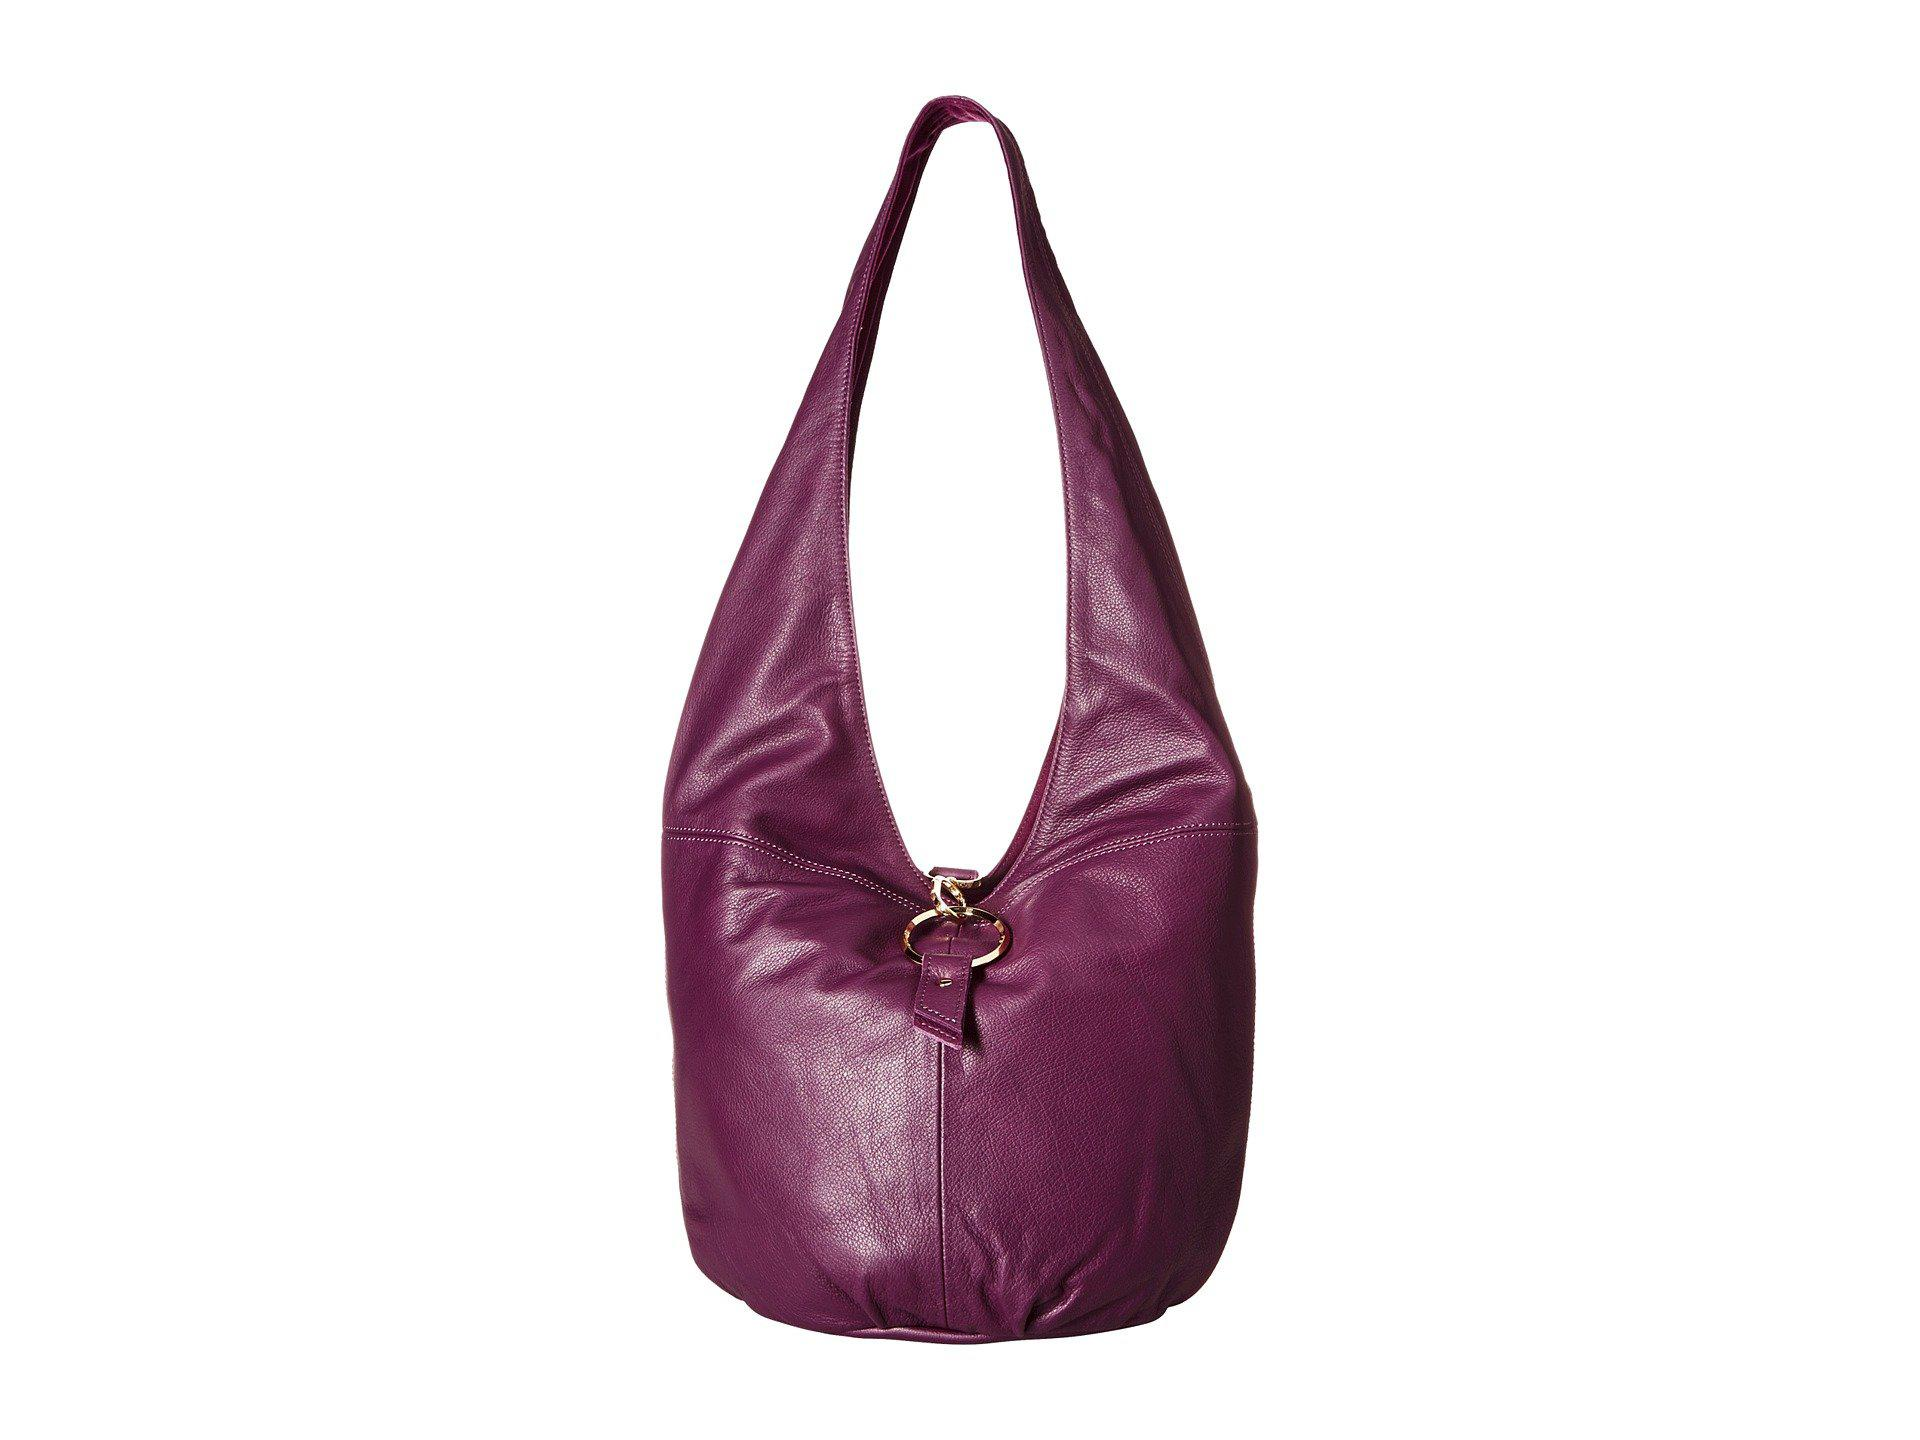 7ae3fbd8e7 Lyst - Liebeskind Hobo M - Bobo H6 (cold Grey) Hobo Handbags in Purple